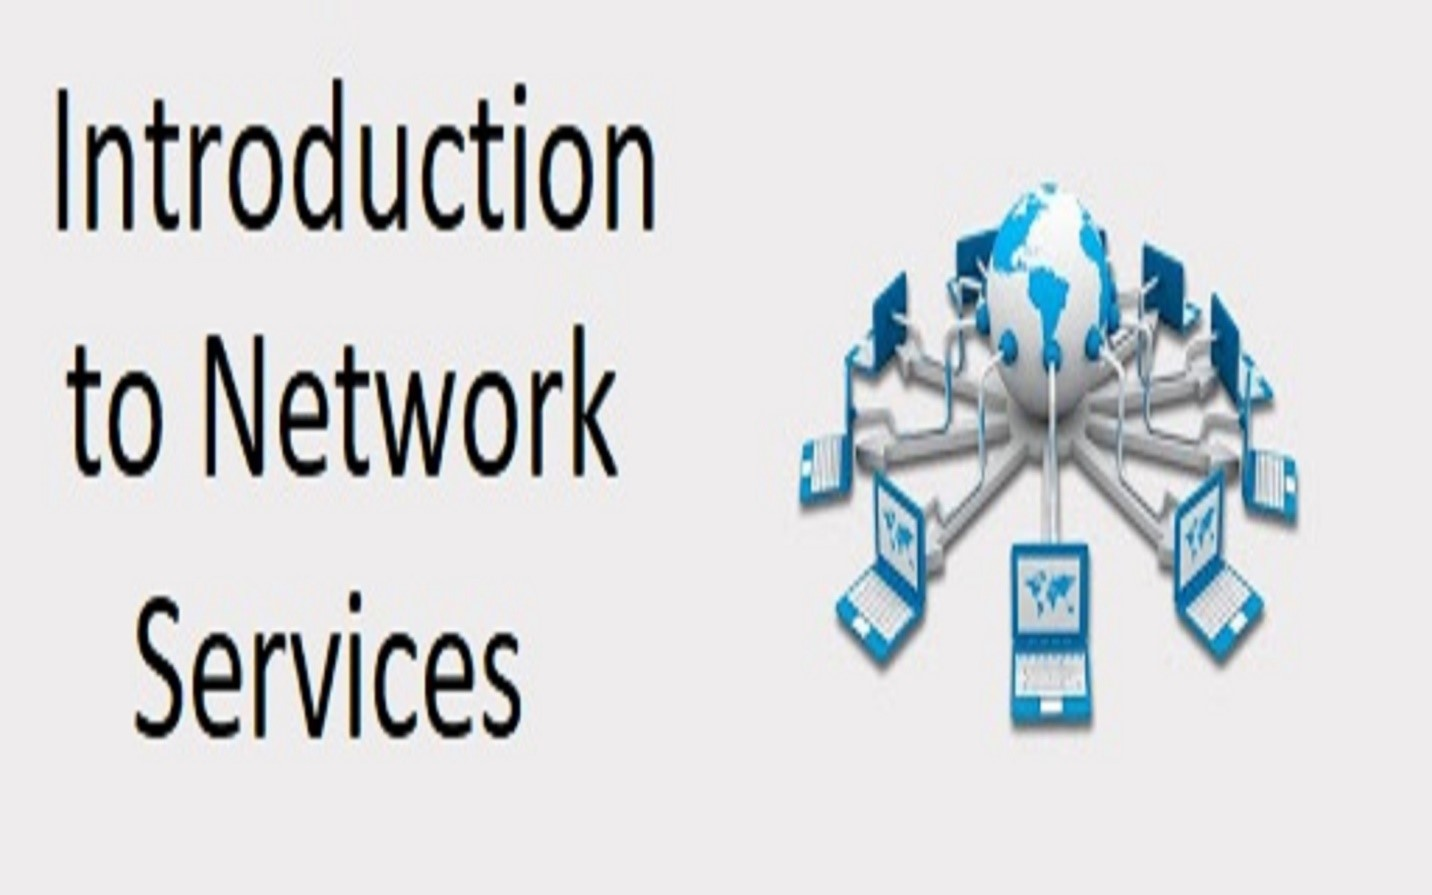 Introduction to Network Services